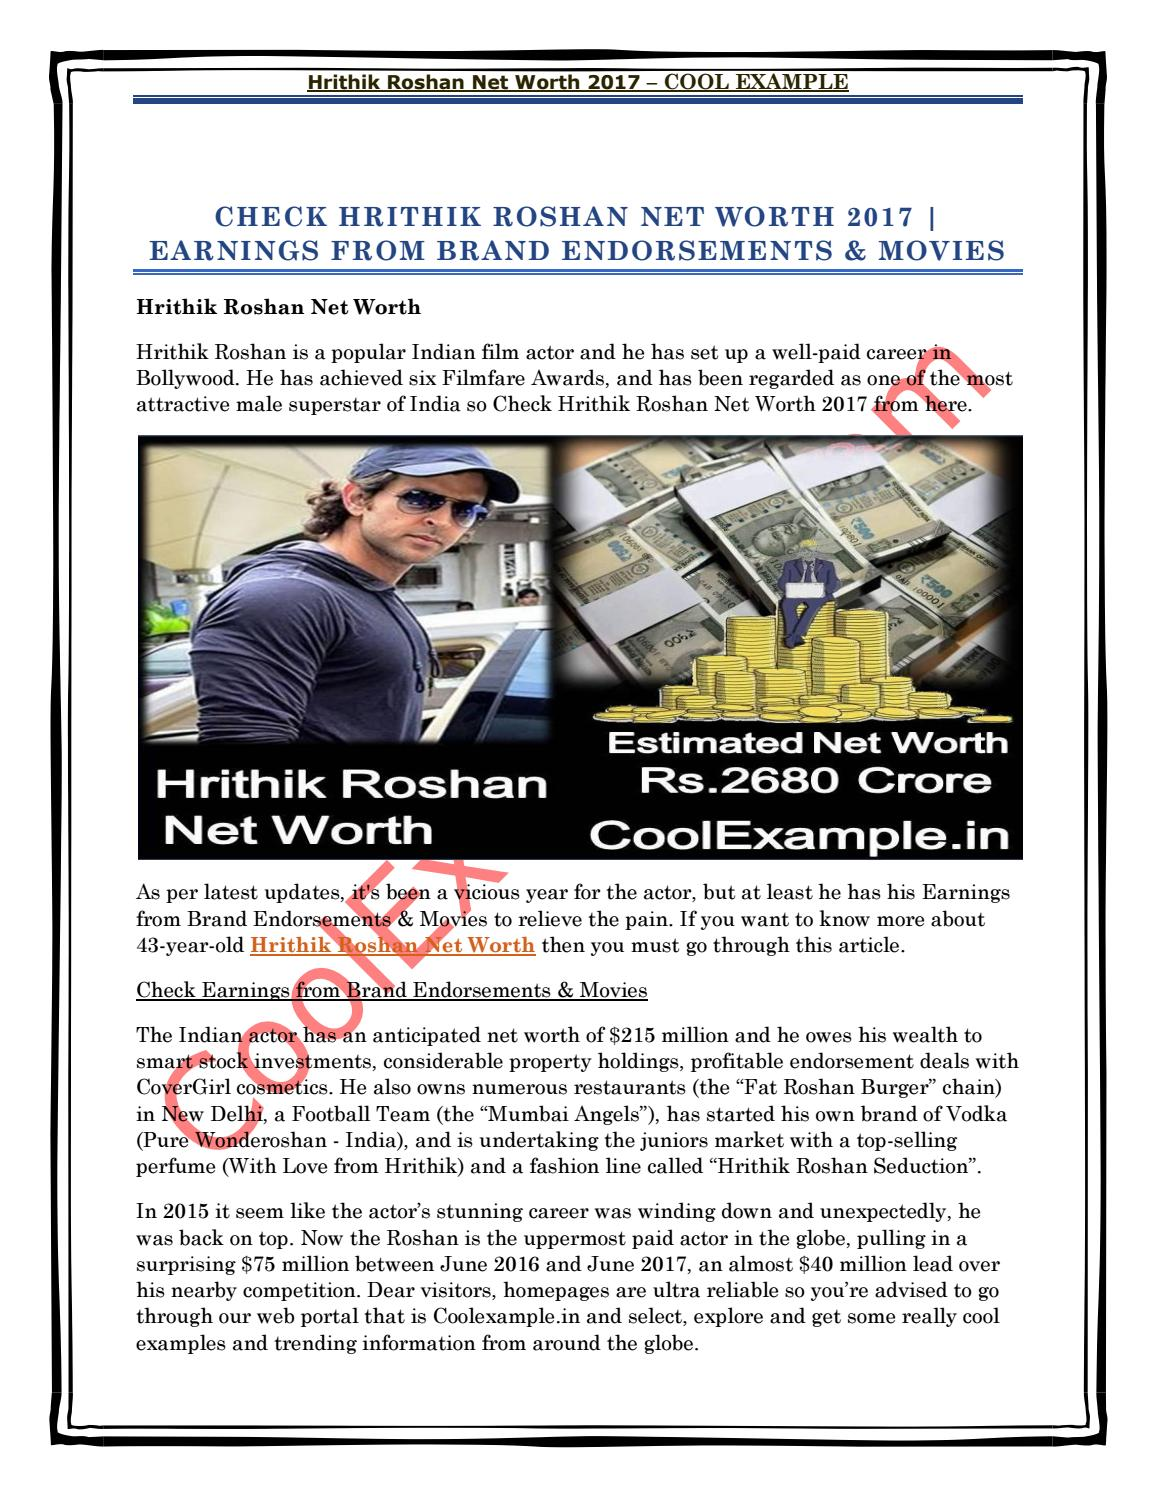 Hrithik roshan net worth by Cool Example - issuu